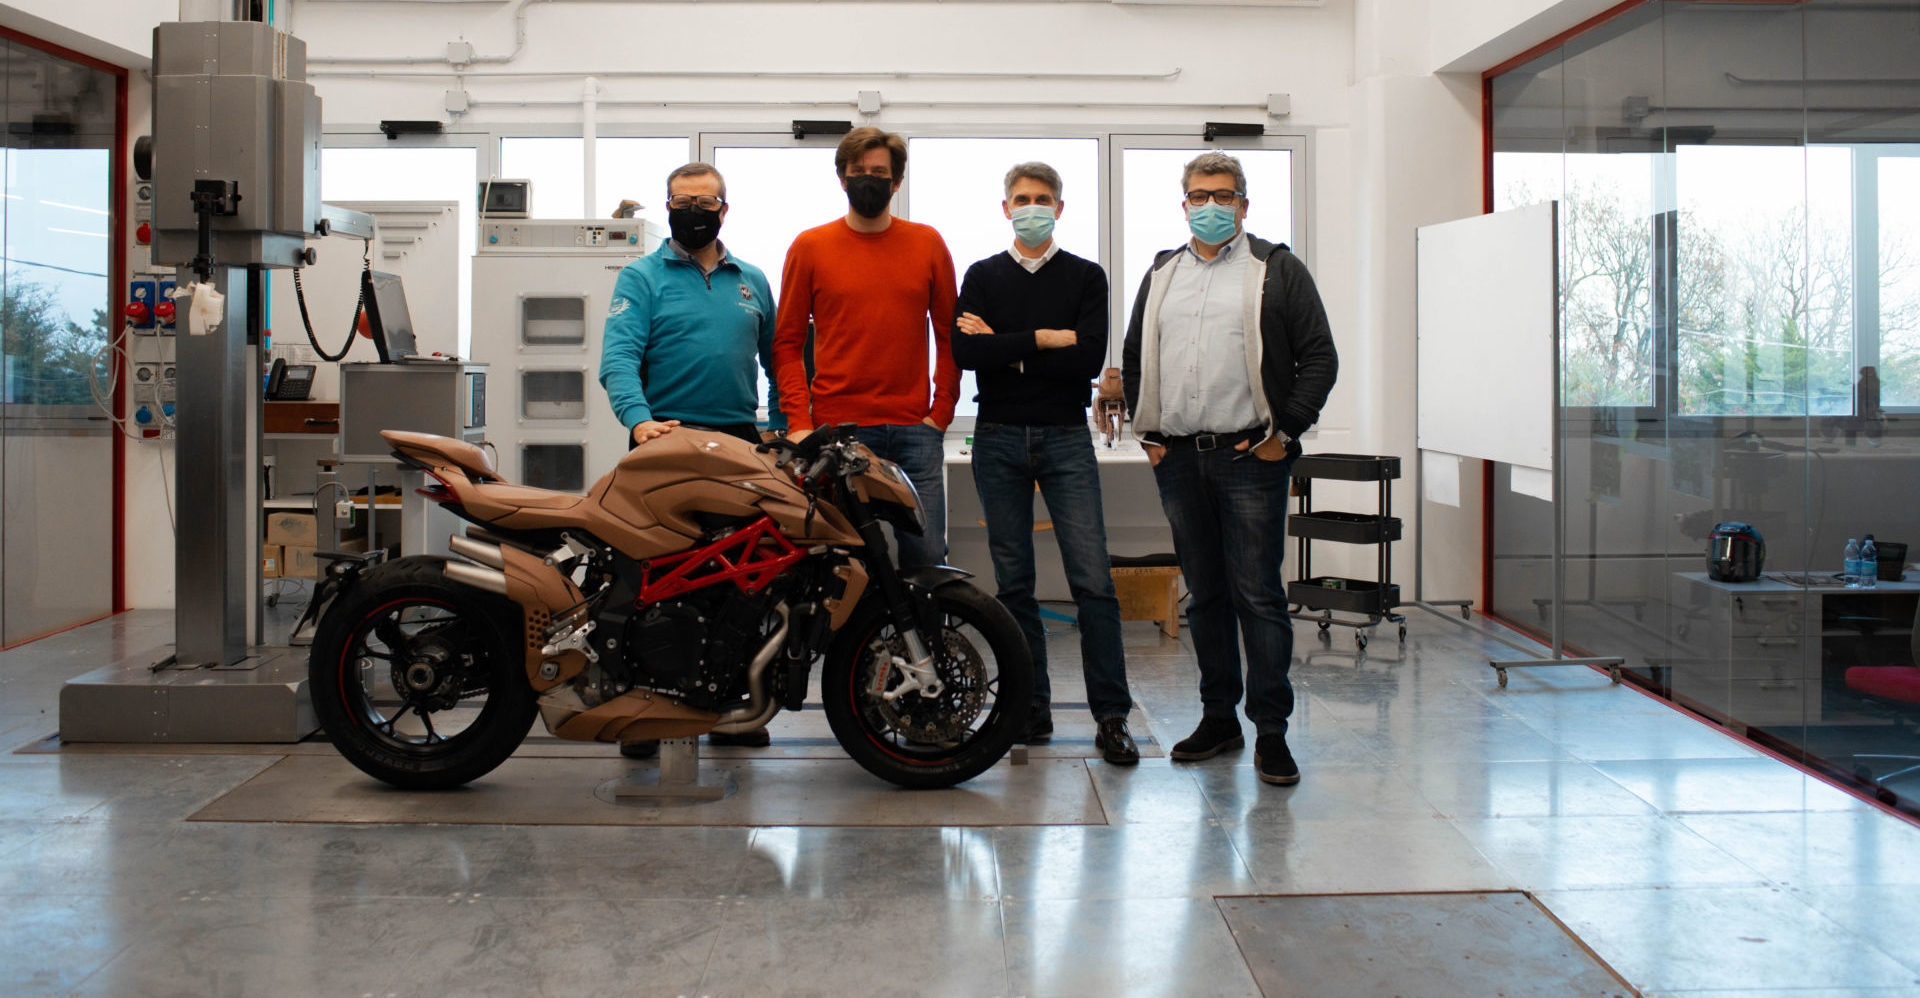 (From left) Alessandro Volpini, Timur Sardarov, Brian Gillen and Giorgio Mazzotti at MV Agusta's new design center in San Marino. Photo courtesy MV Agusta.